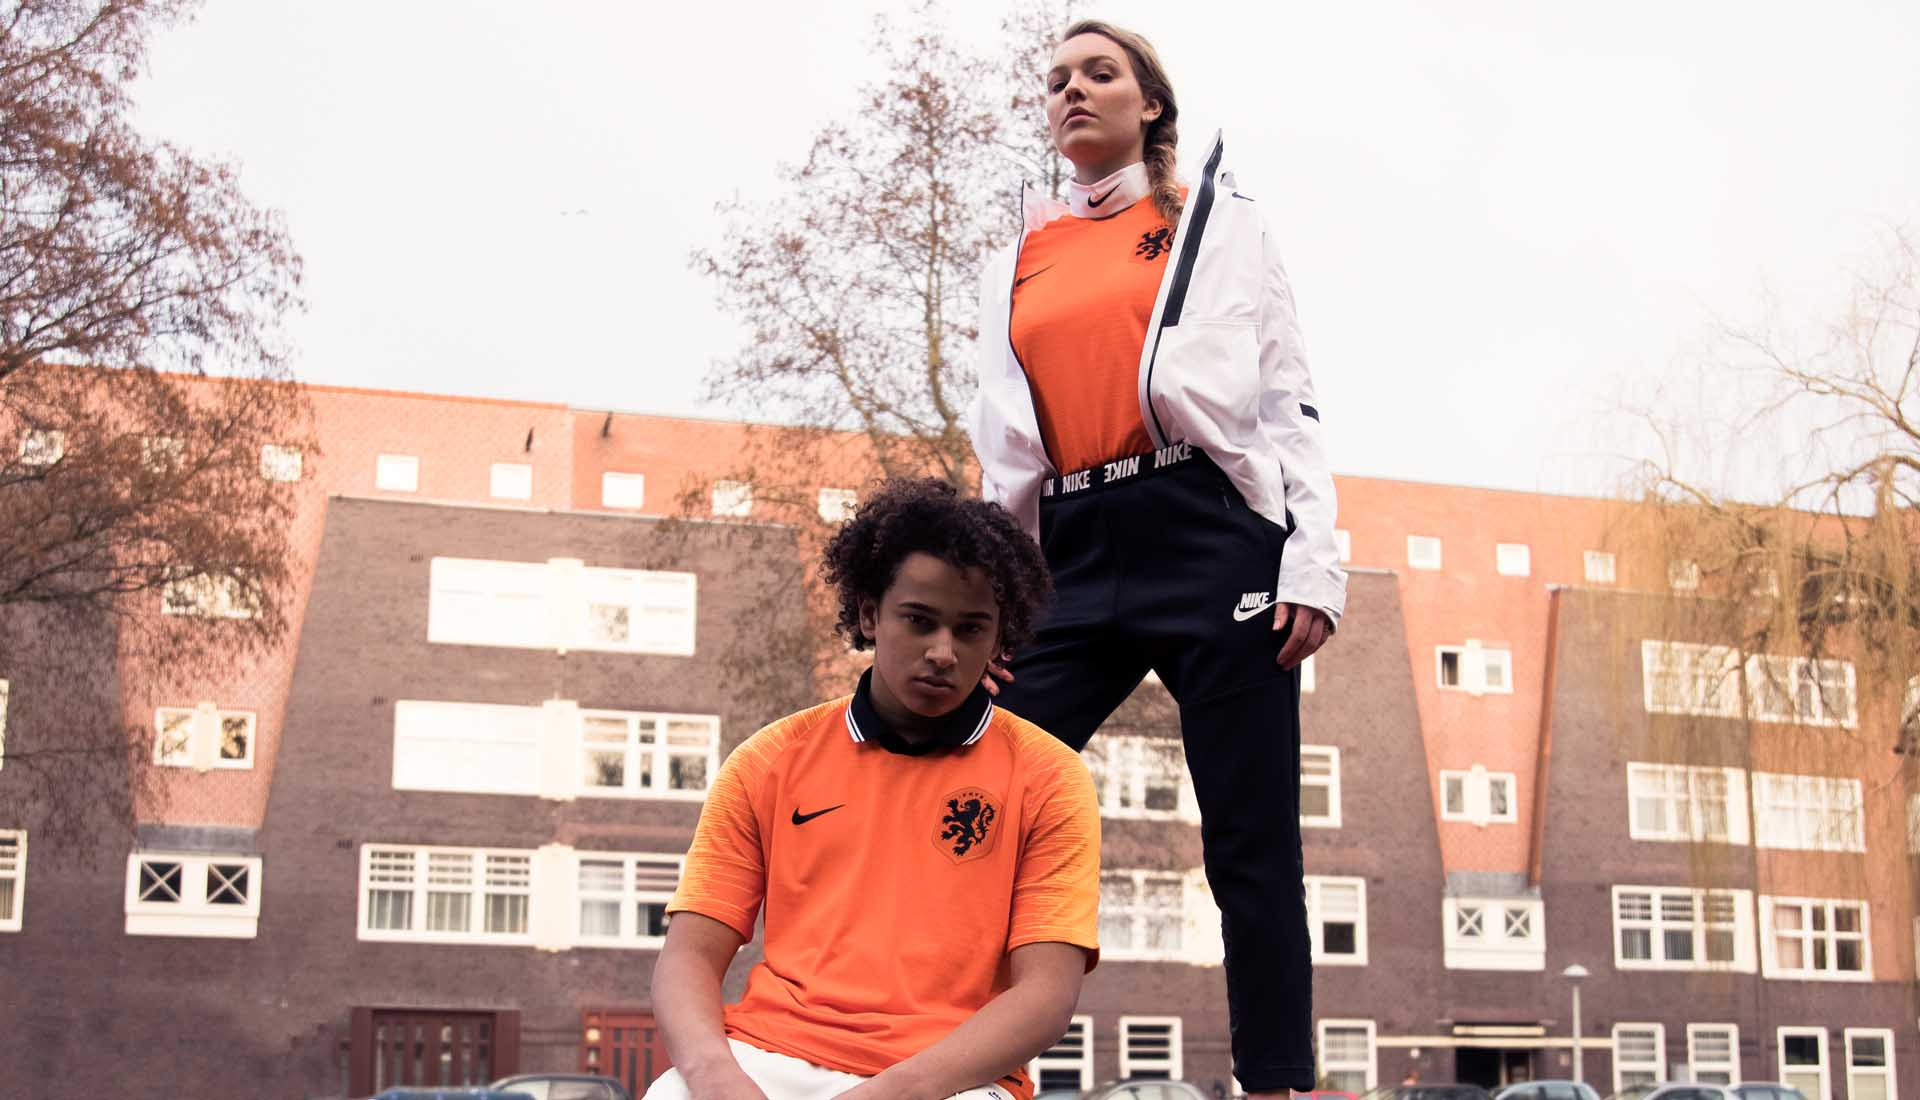 reputable site bbe91 5520f Nike Launch Netherlands 2018 Home & Away Shirts - SoccerBible